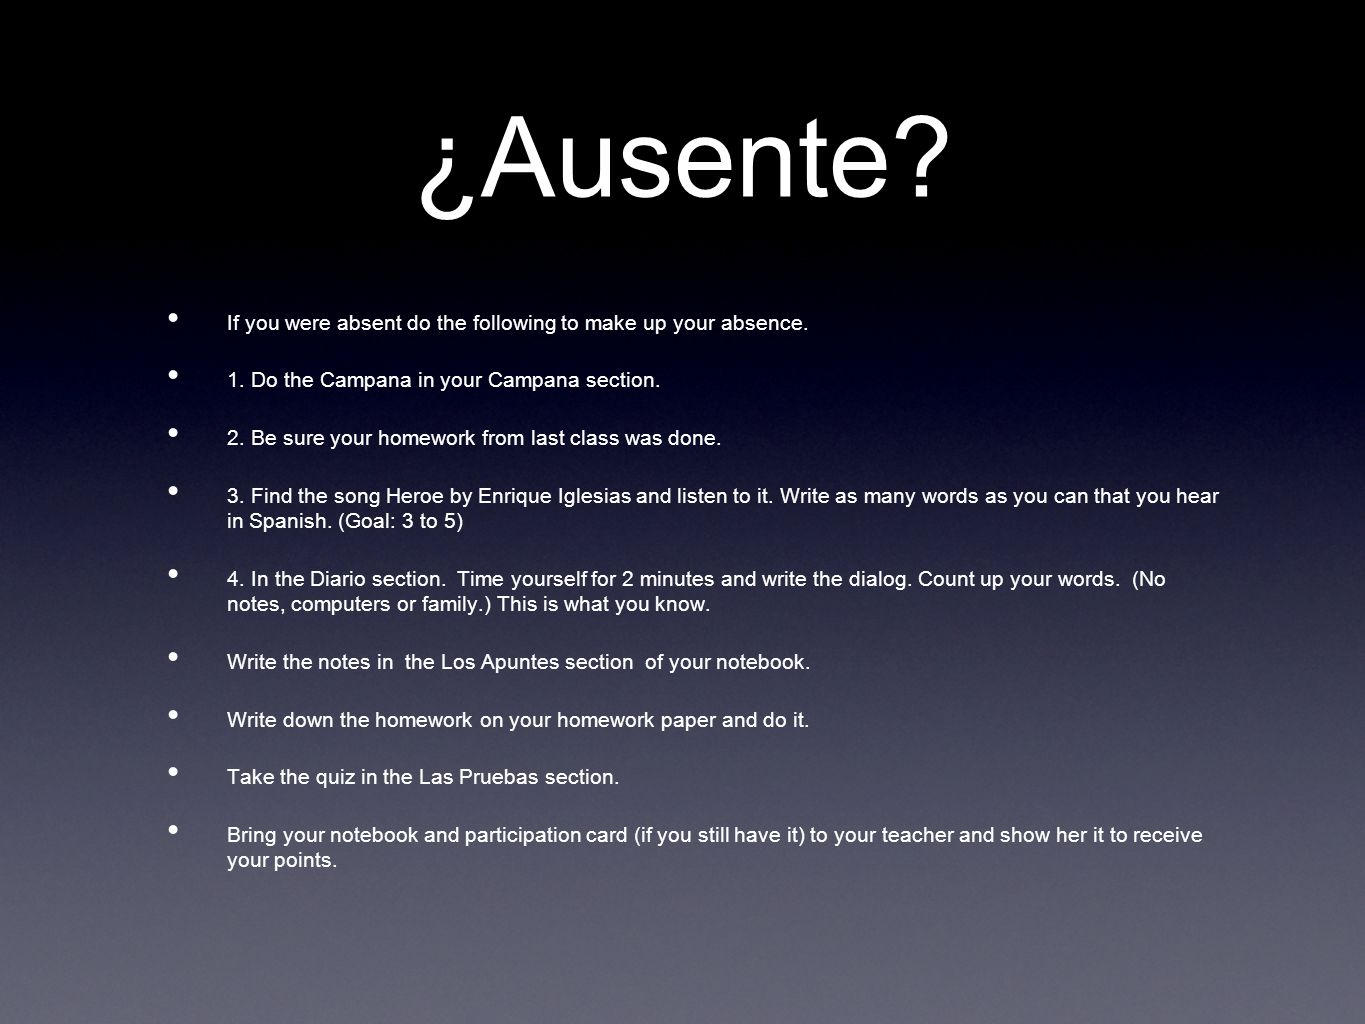 ¿Ausente. If you were absent do the following to make up your absence.